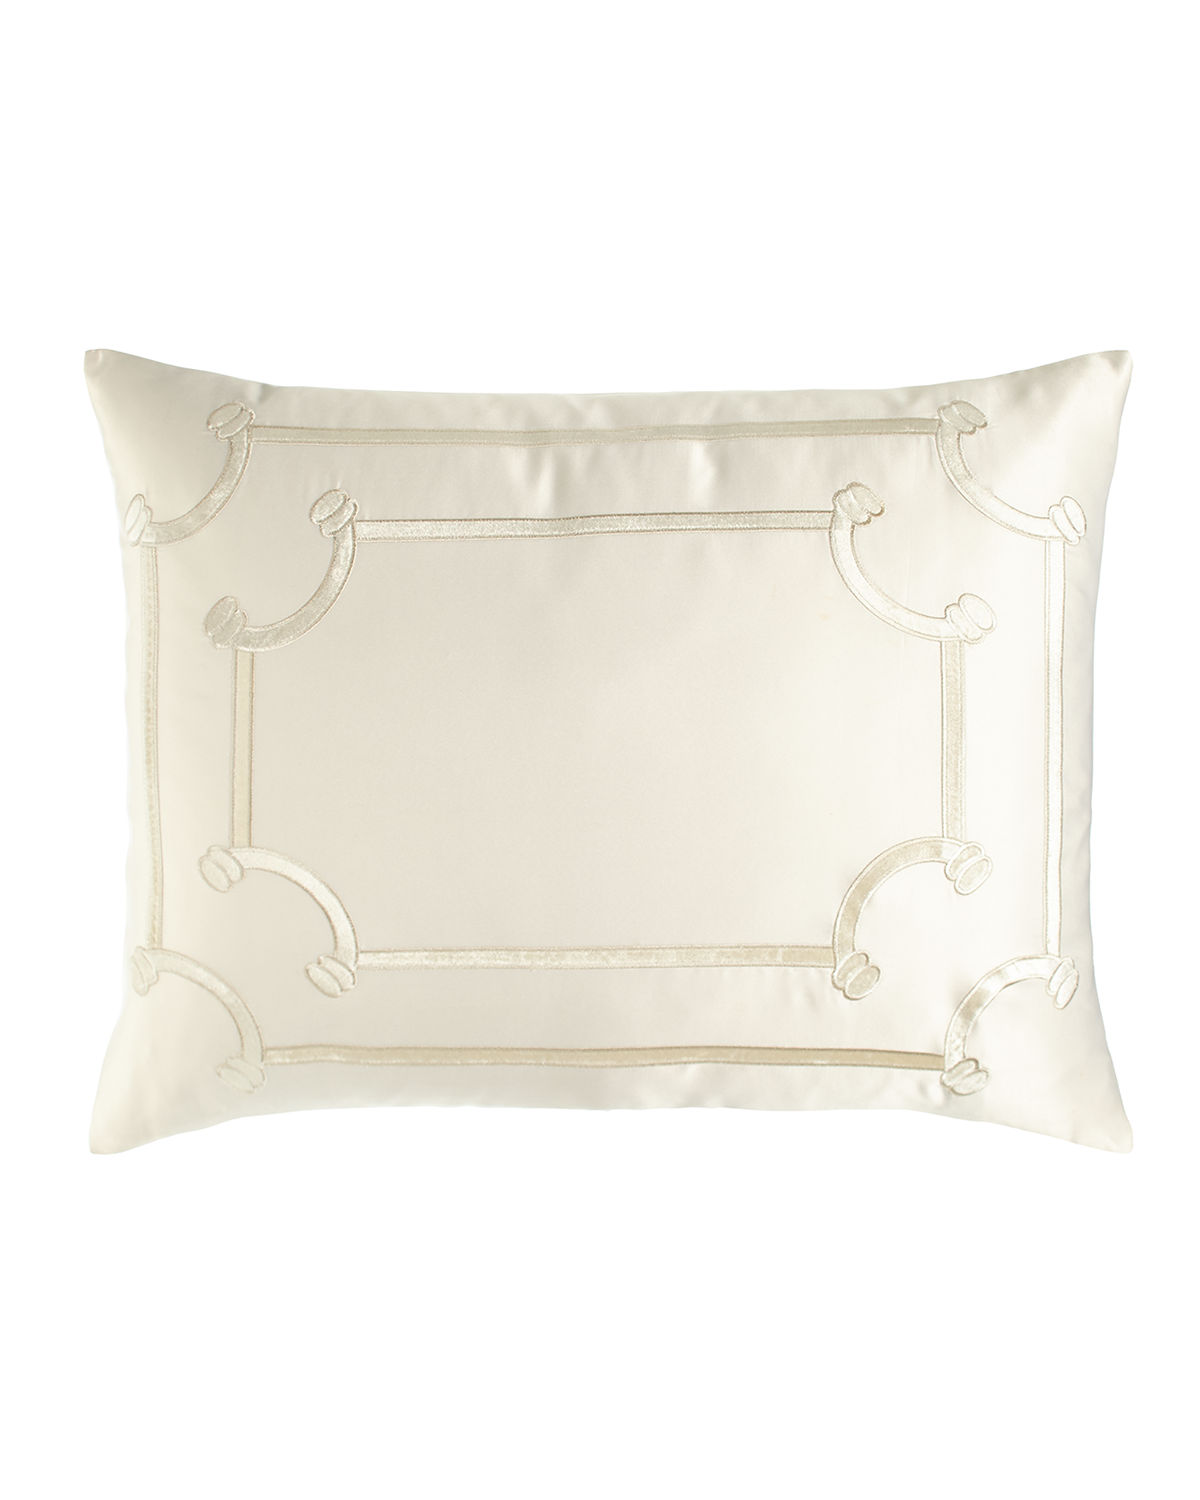 Lili Alessandra Pillows STANDARD VENDOME SHAM